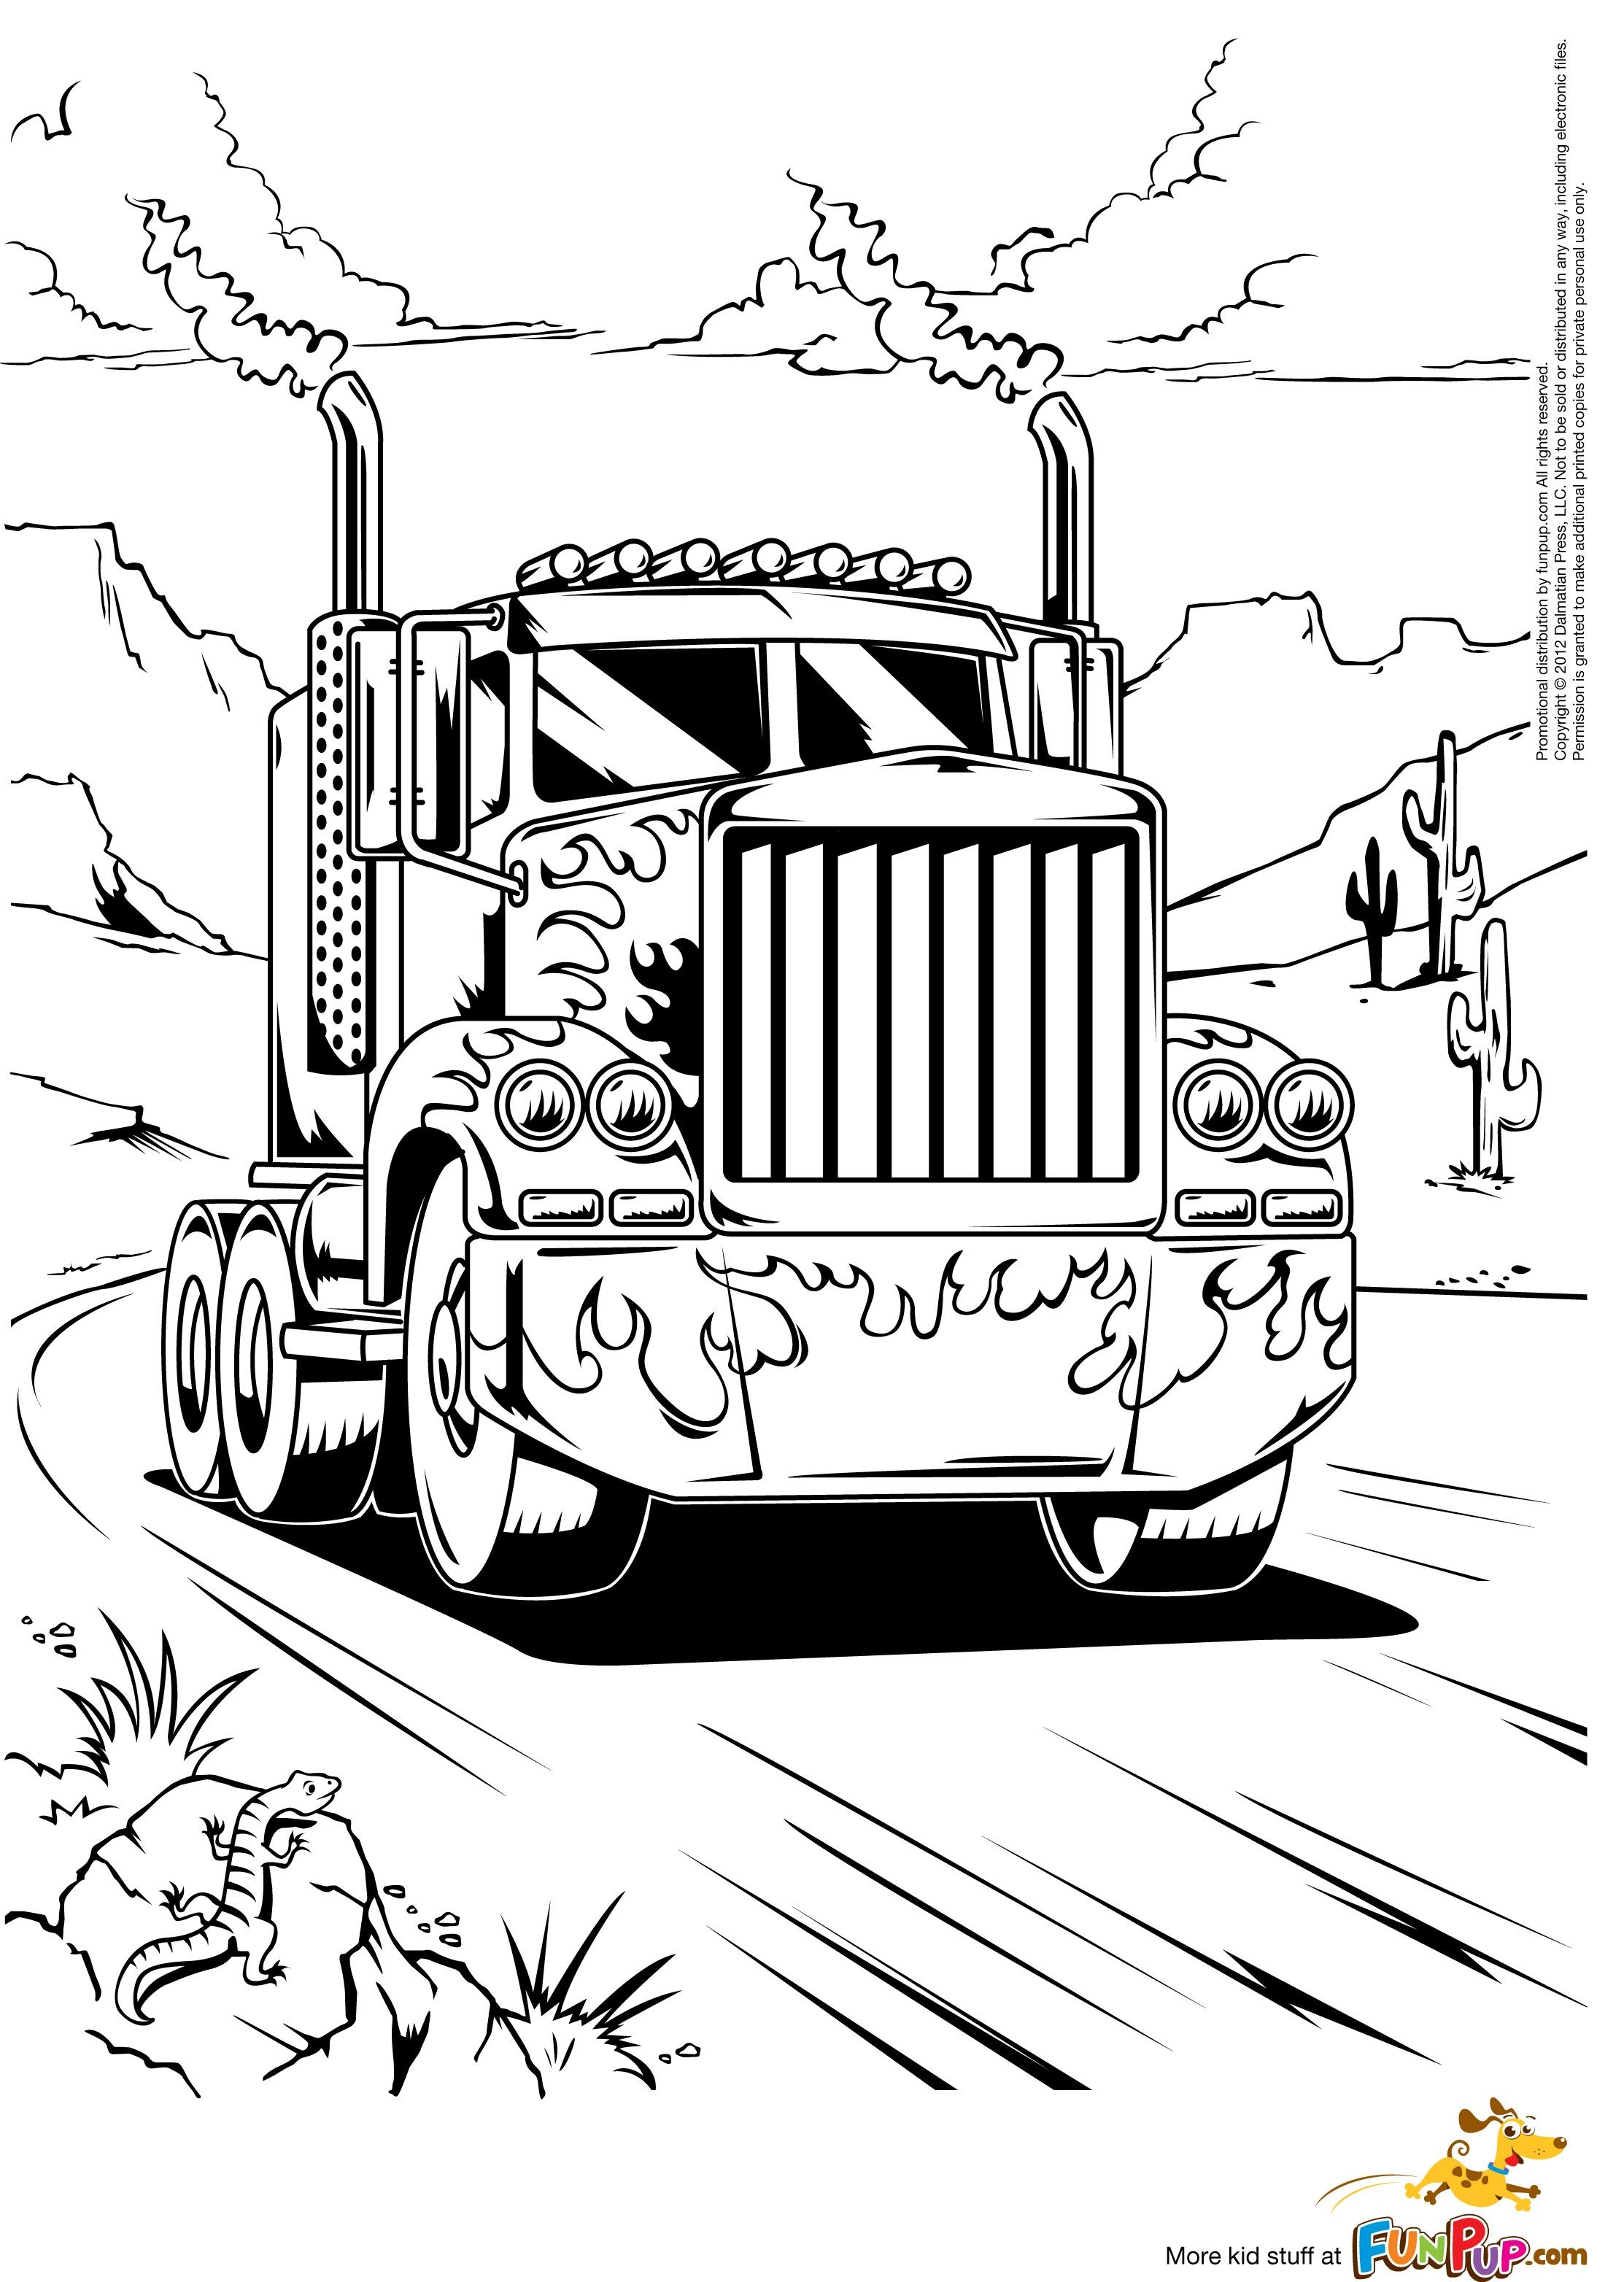 Mack Titan Trucks Coloring Picture You Can Print Out This Truck ColoringPage For Boys Yescoloring Images 03